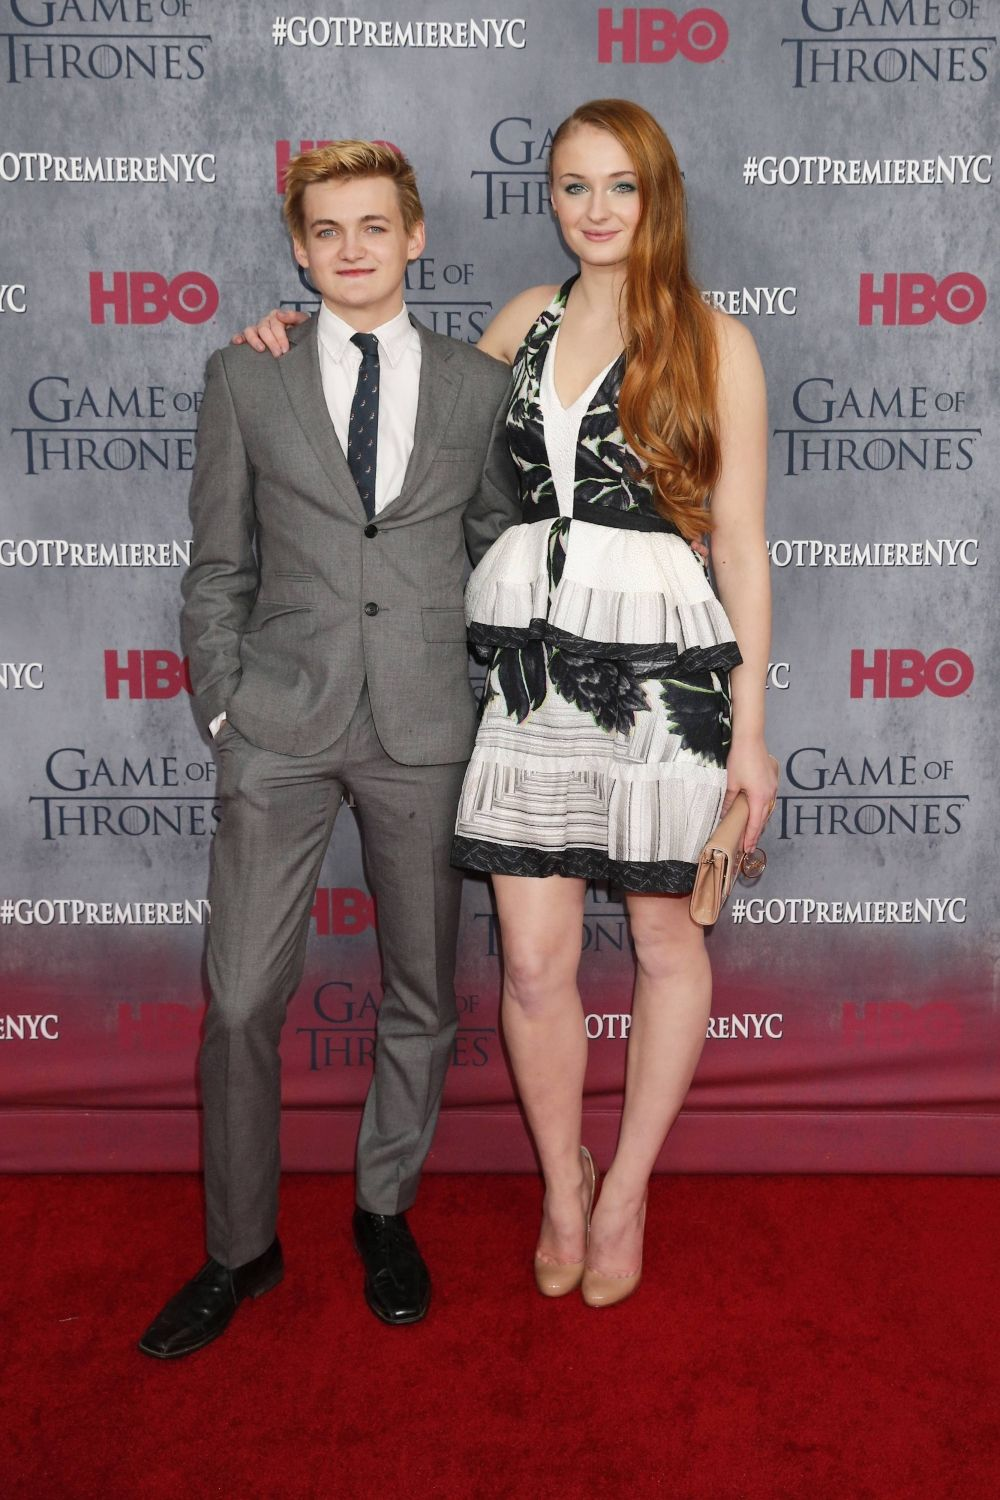 ¿Cuánto mide Sophie Turner? - Altura - Real height 455c28b26aa12444f5c81435a81758d0